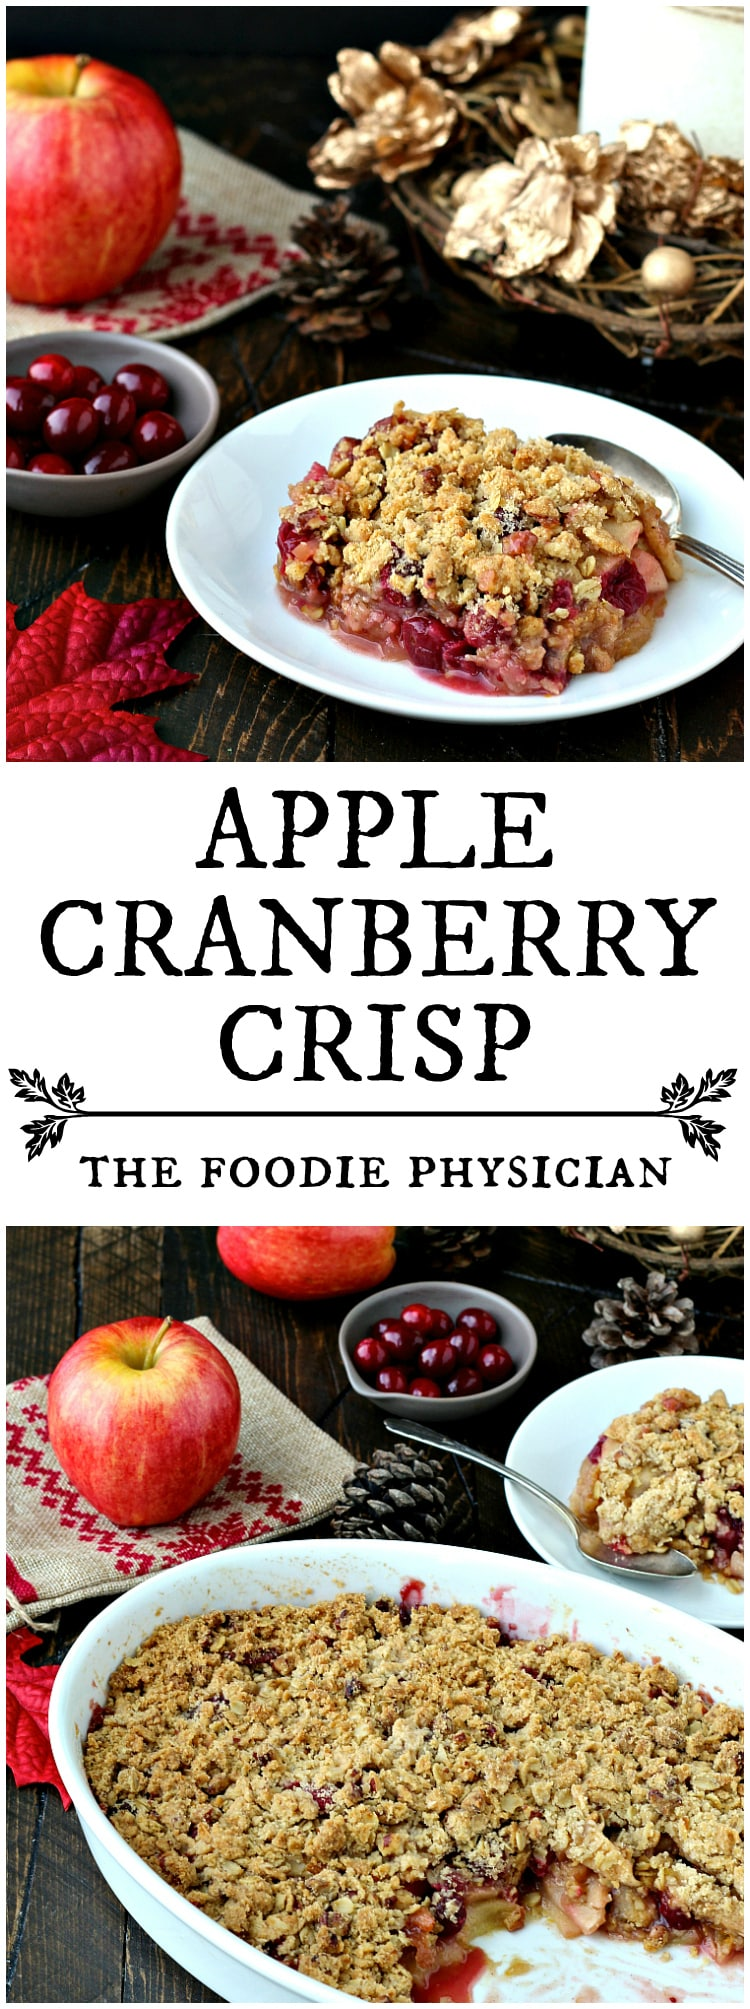 Apple Cranberry Crisp- bursting with fresh, sweet apples and tart cranberries,this is a guaranteed crowd pleaser! | @foodiephysician